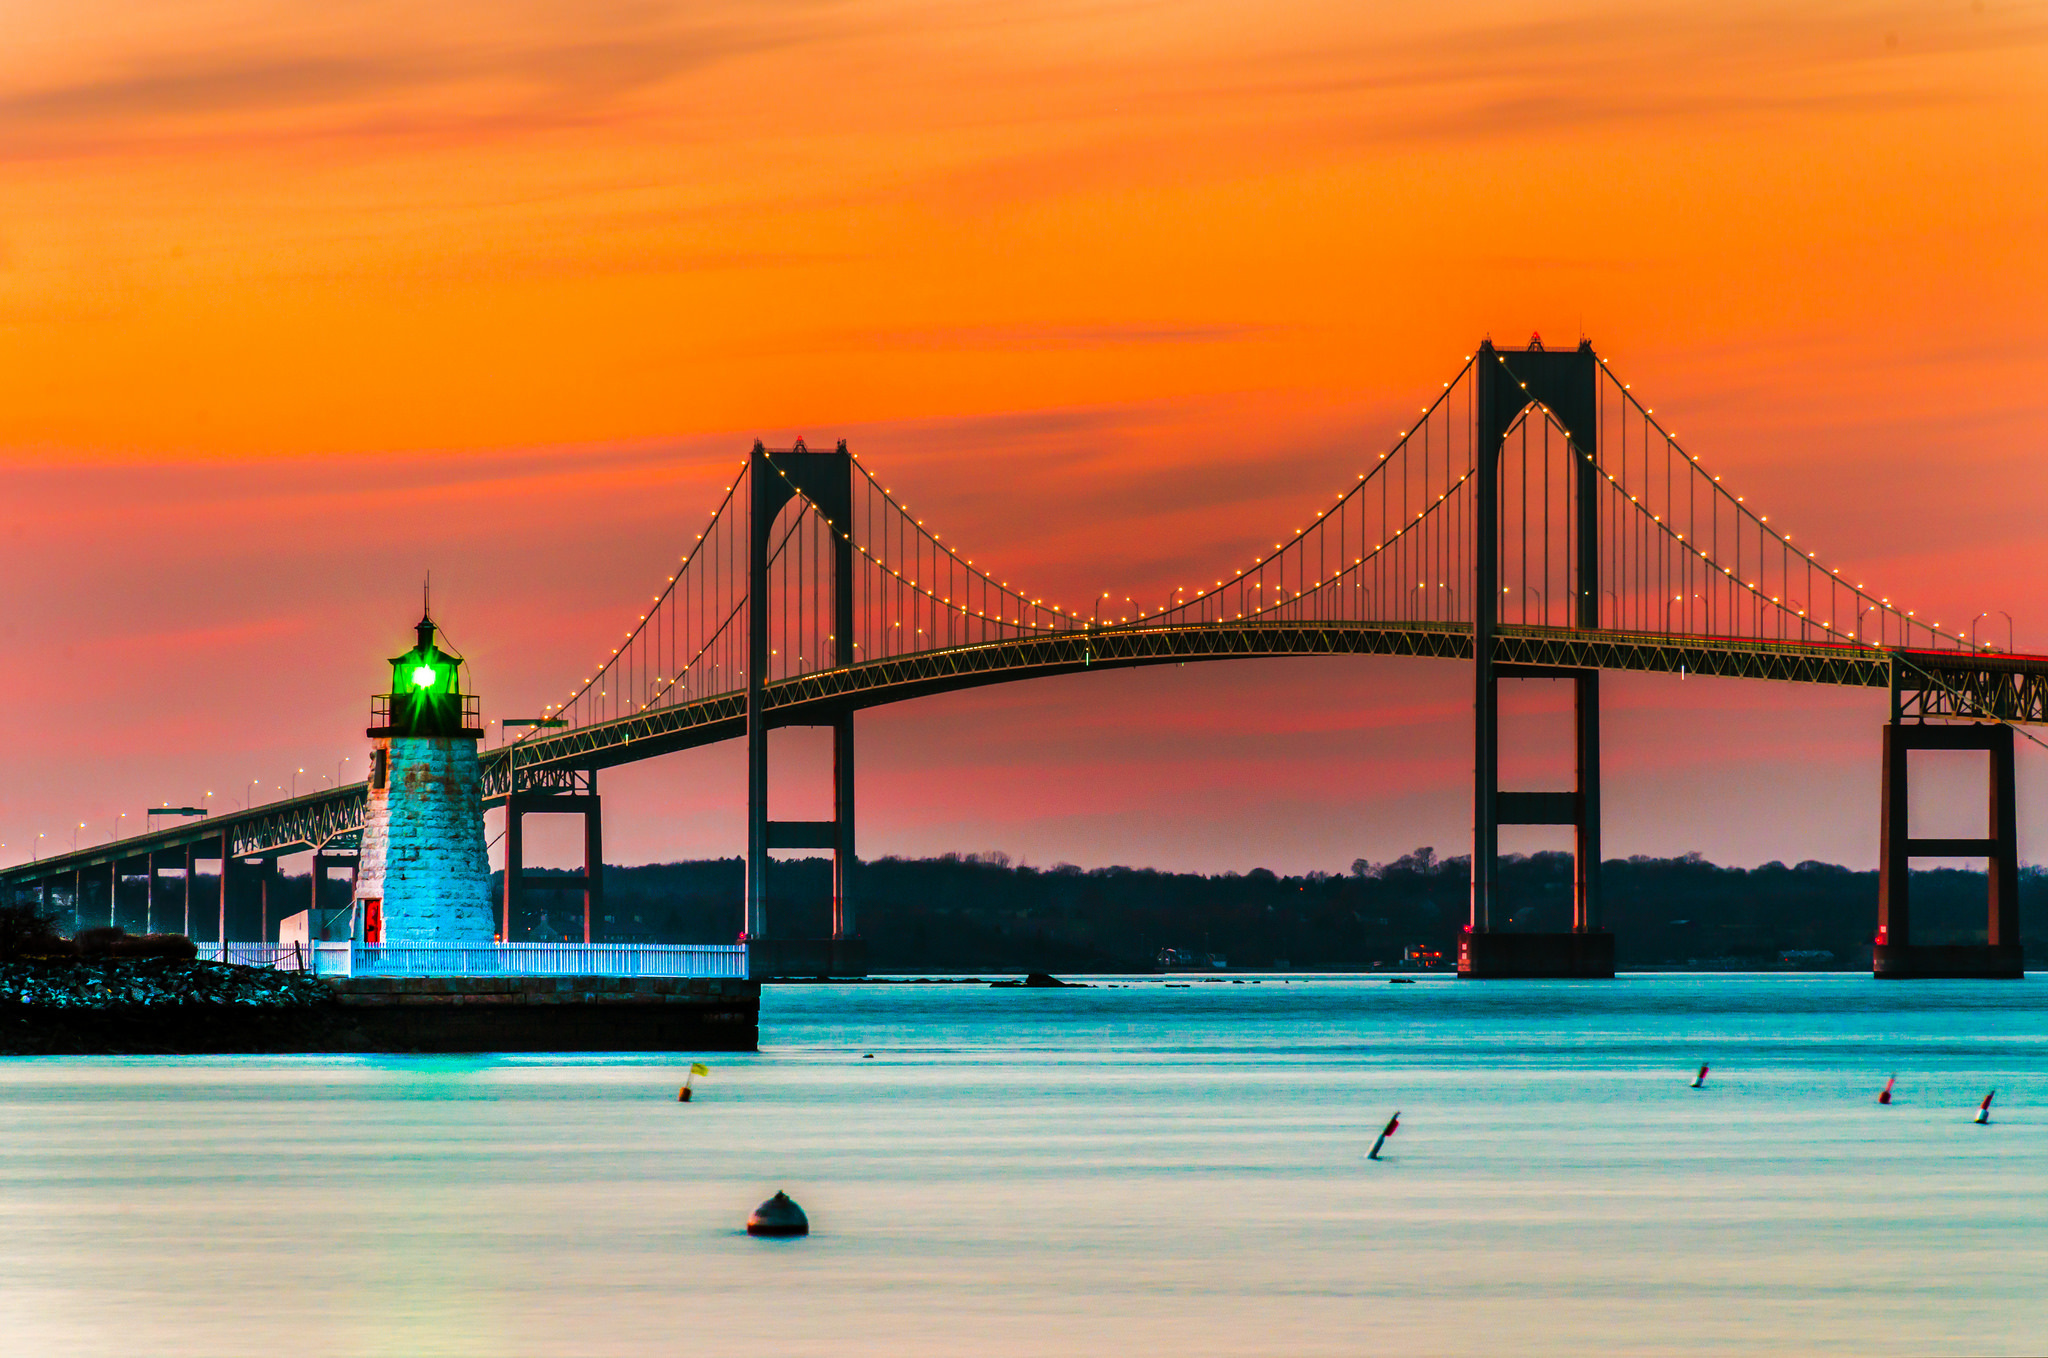 Sunset over Lighthouse and Bridge in Newport Rhode Island HD 2048x1358